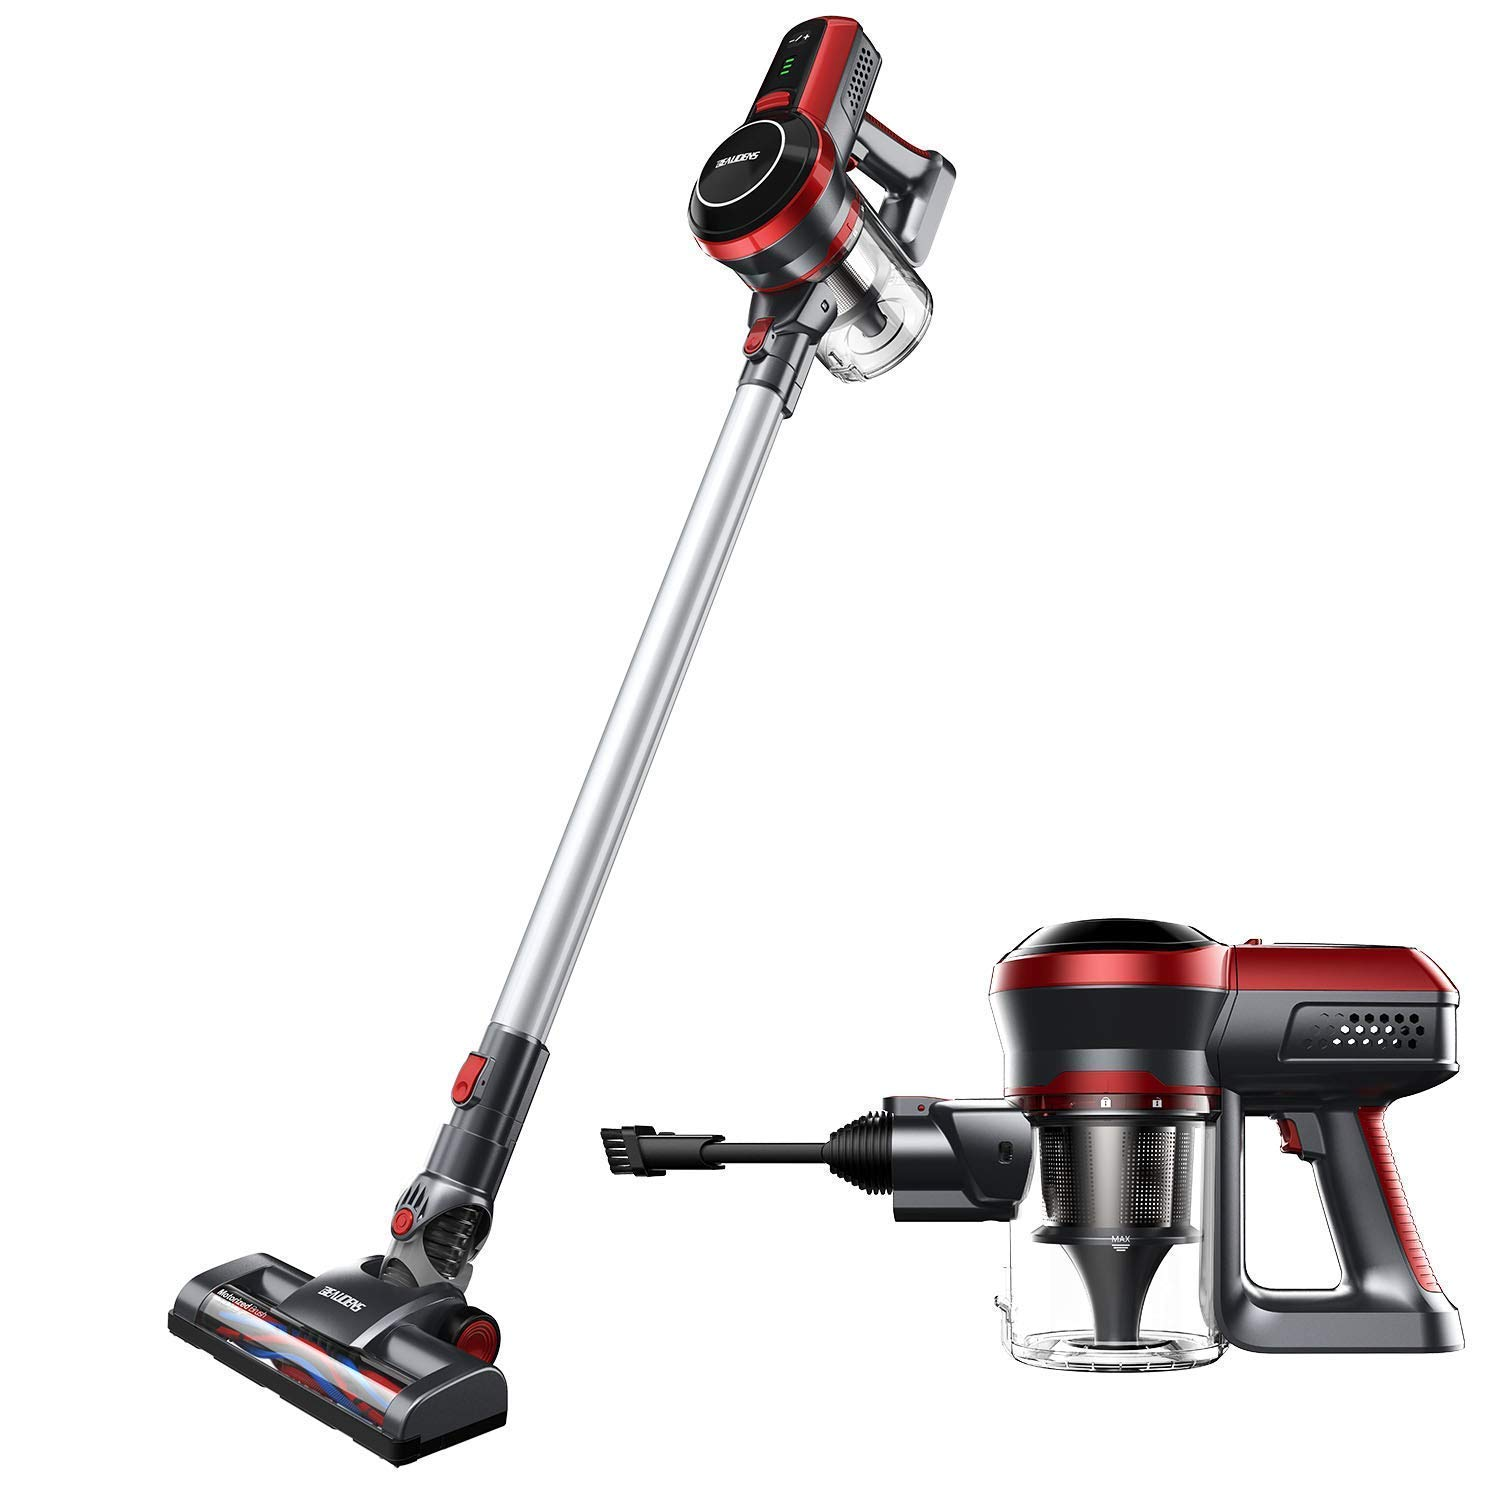 Cordless Vacuum Cleaner, Powerful 130W Motor, Lightweight and Quiet, 45 Minutes Long Runtime, 2 in 1 Stick and Handheld, Wall Mounted by BEAUDENS